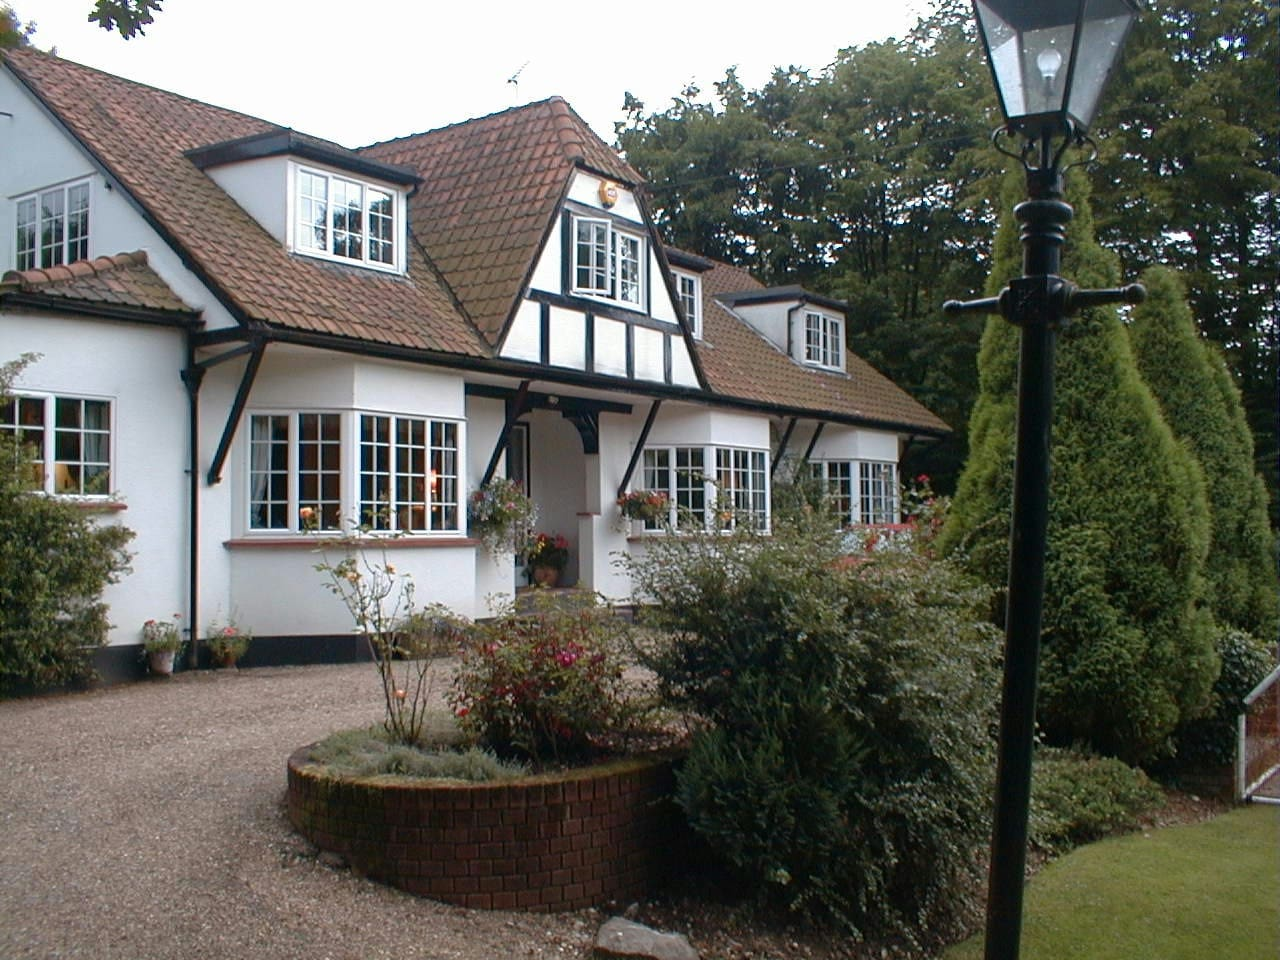 Oaklands Manor B&B- Luxury  5 star accommodation for that perfect break and relaxation